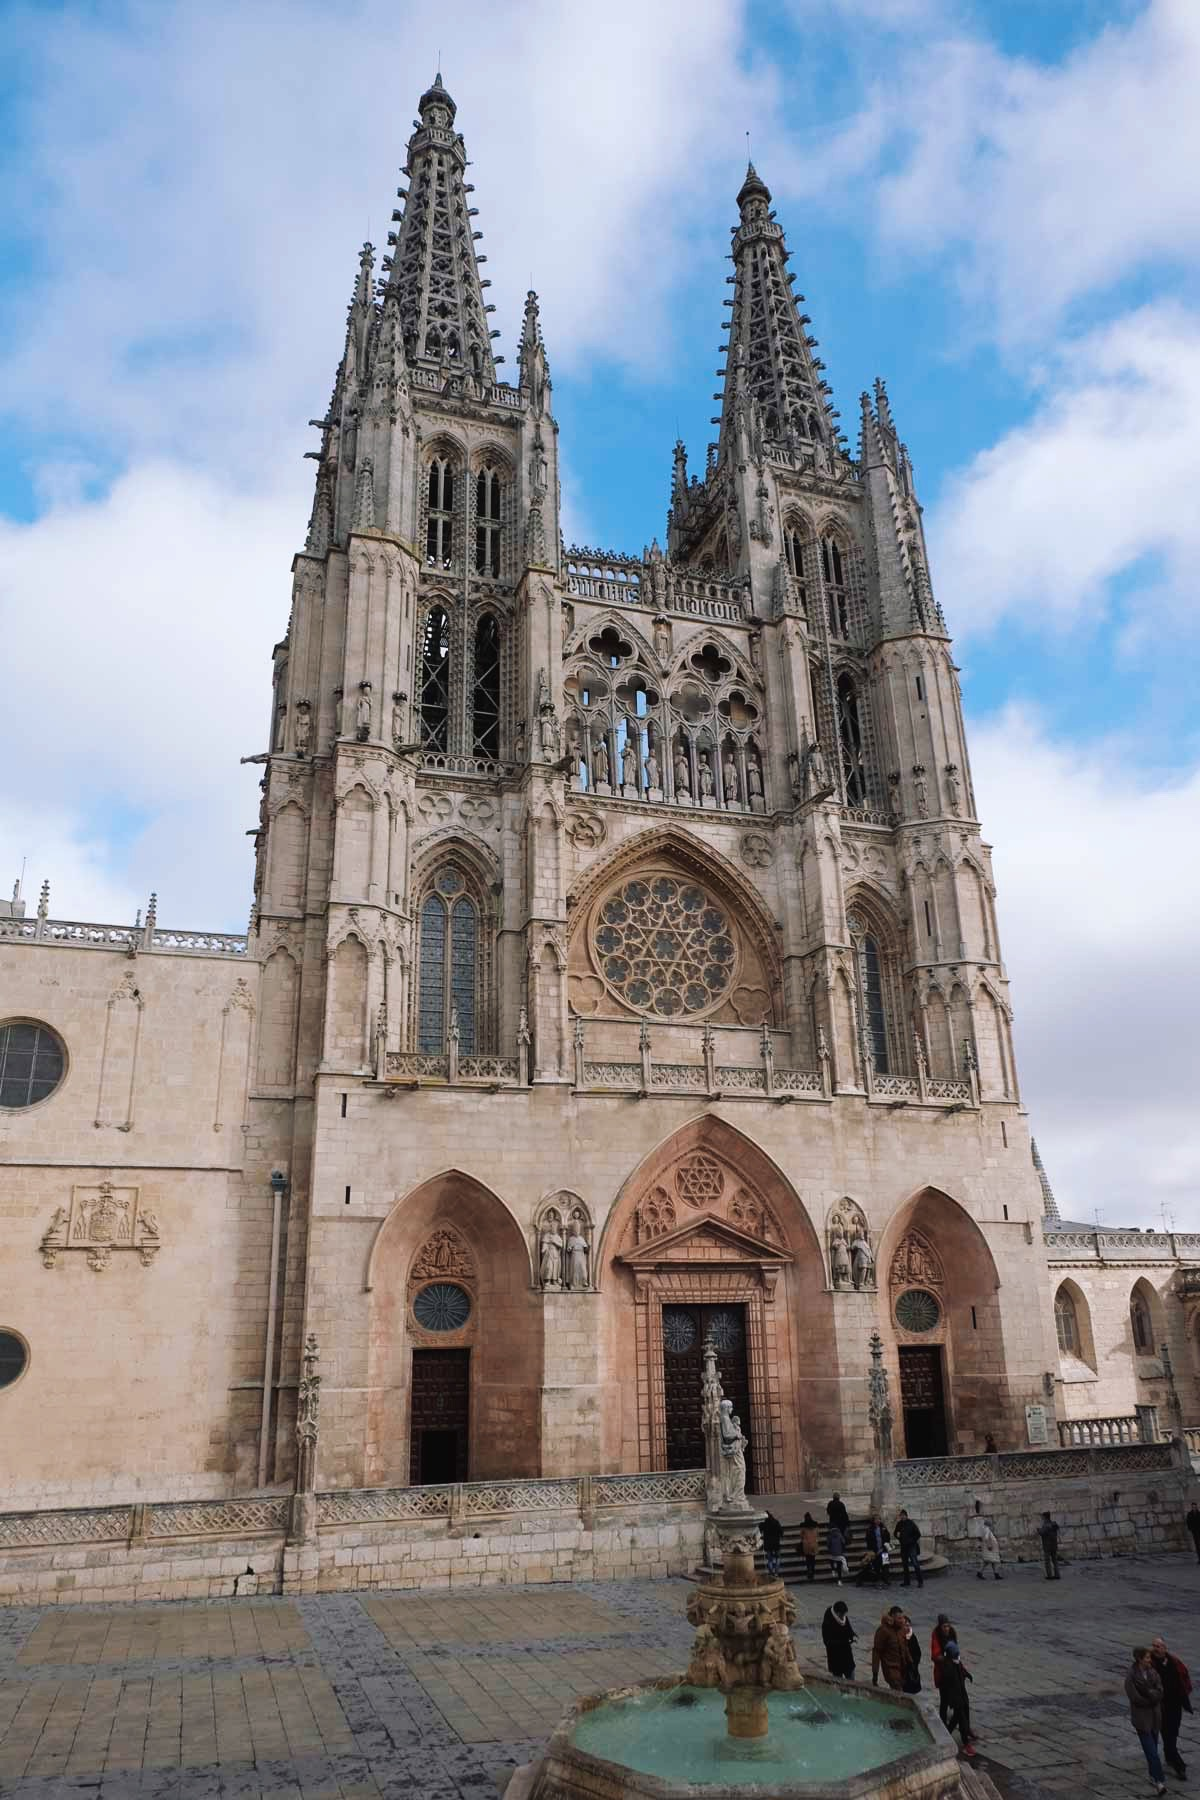 Burgos Cathedral's began in 1221 and spanned mainly from the 13th to 15th centuries. It has been declared a UNESCO World Heritage Site. / Photo: Superminimaps